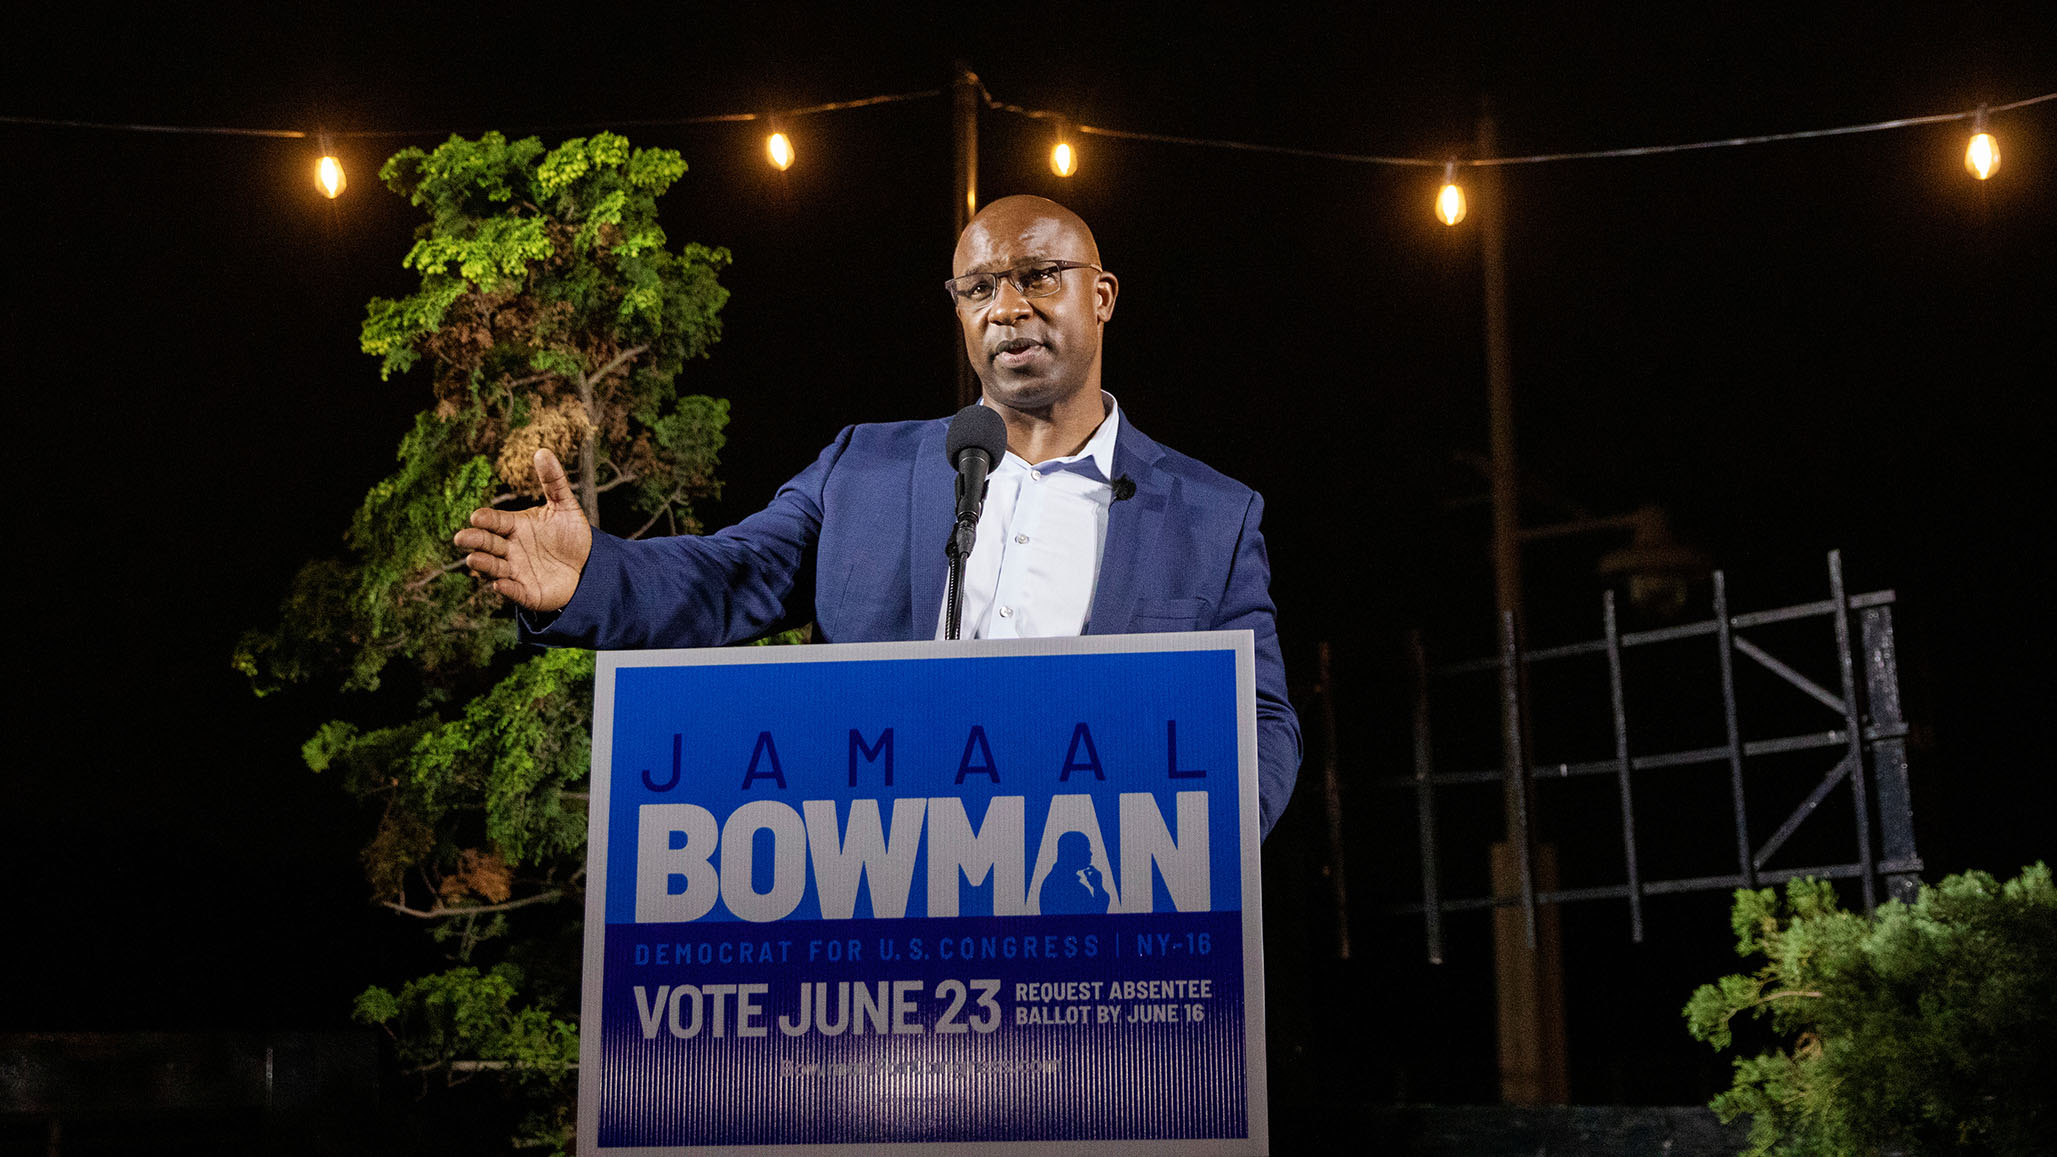 Progressive Jamaal Bowman on Track to Oust 16-Term Incumbent Eliot Engel in NY Primary thumbnail